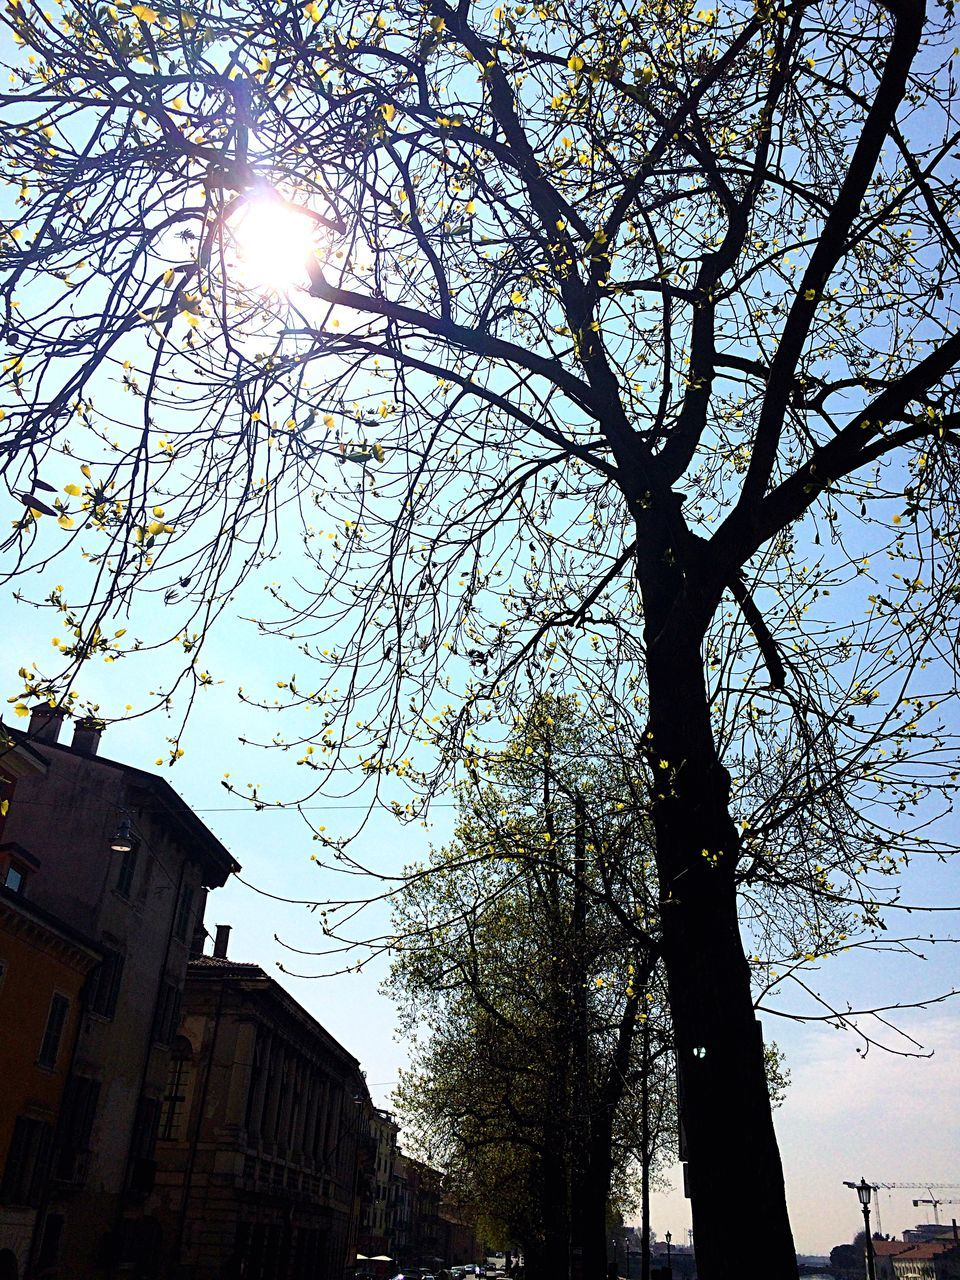 tree, architecture, low angle view, built structure, lens flare, sunlight, building exterior, sunbeam, sun, day, outdoors, branch, no people, sky, nature, bare tree, clear sky